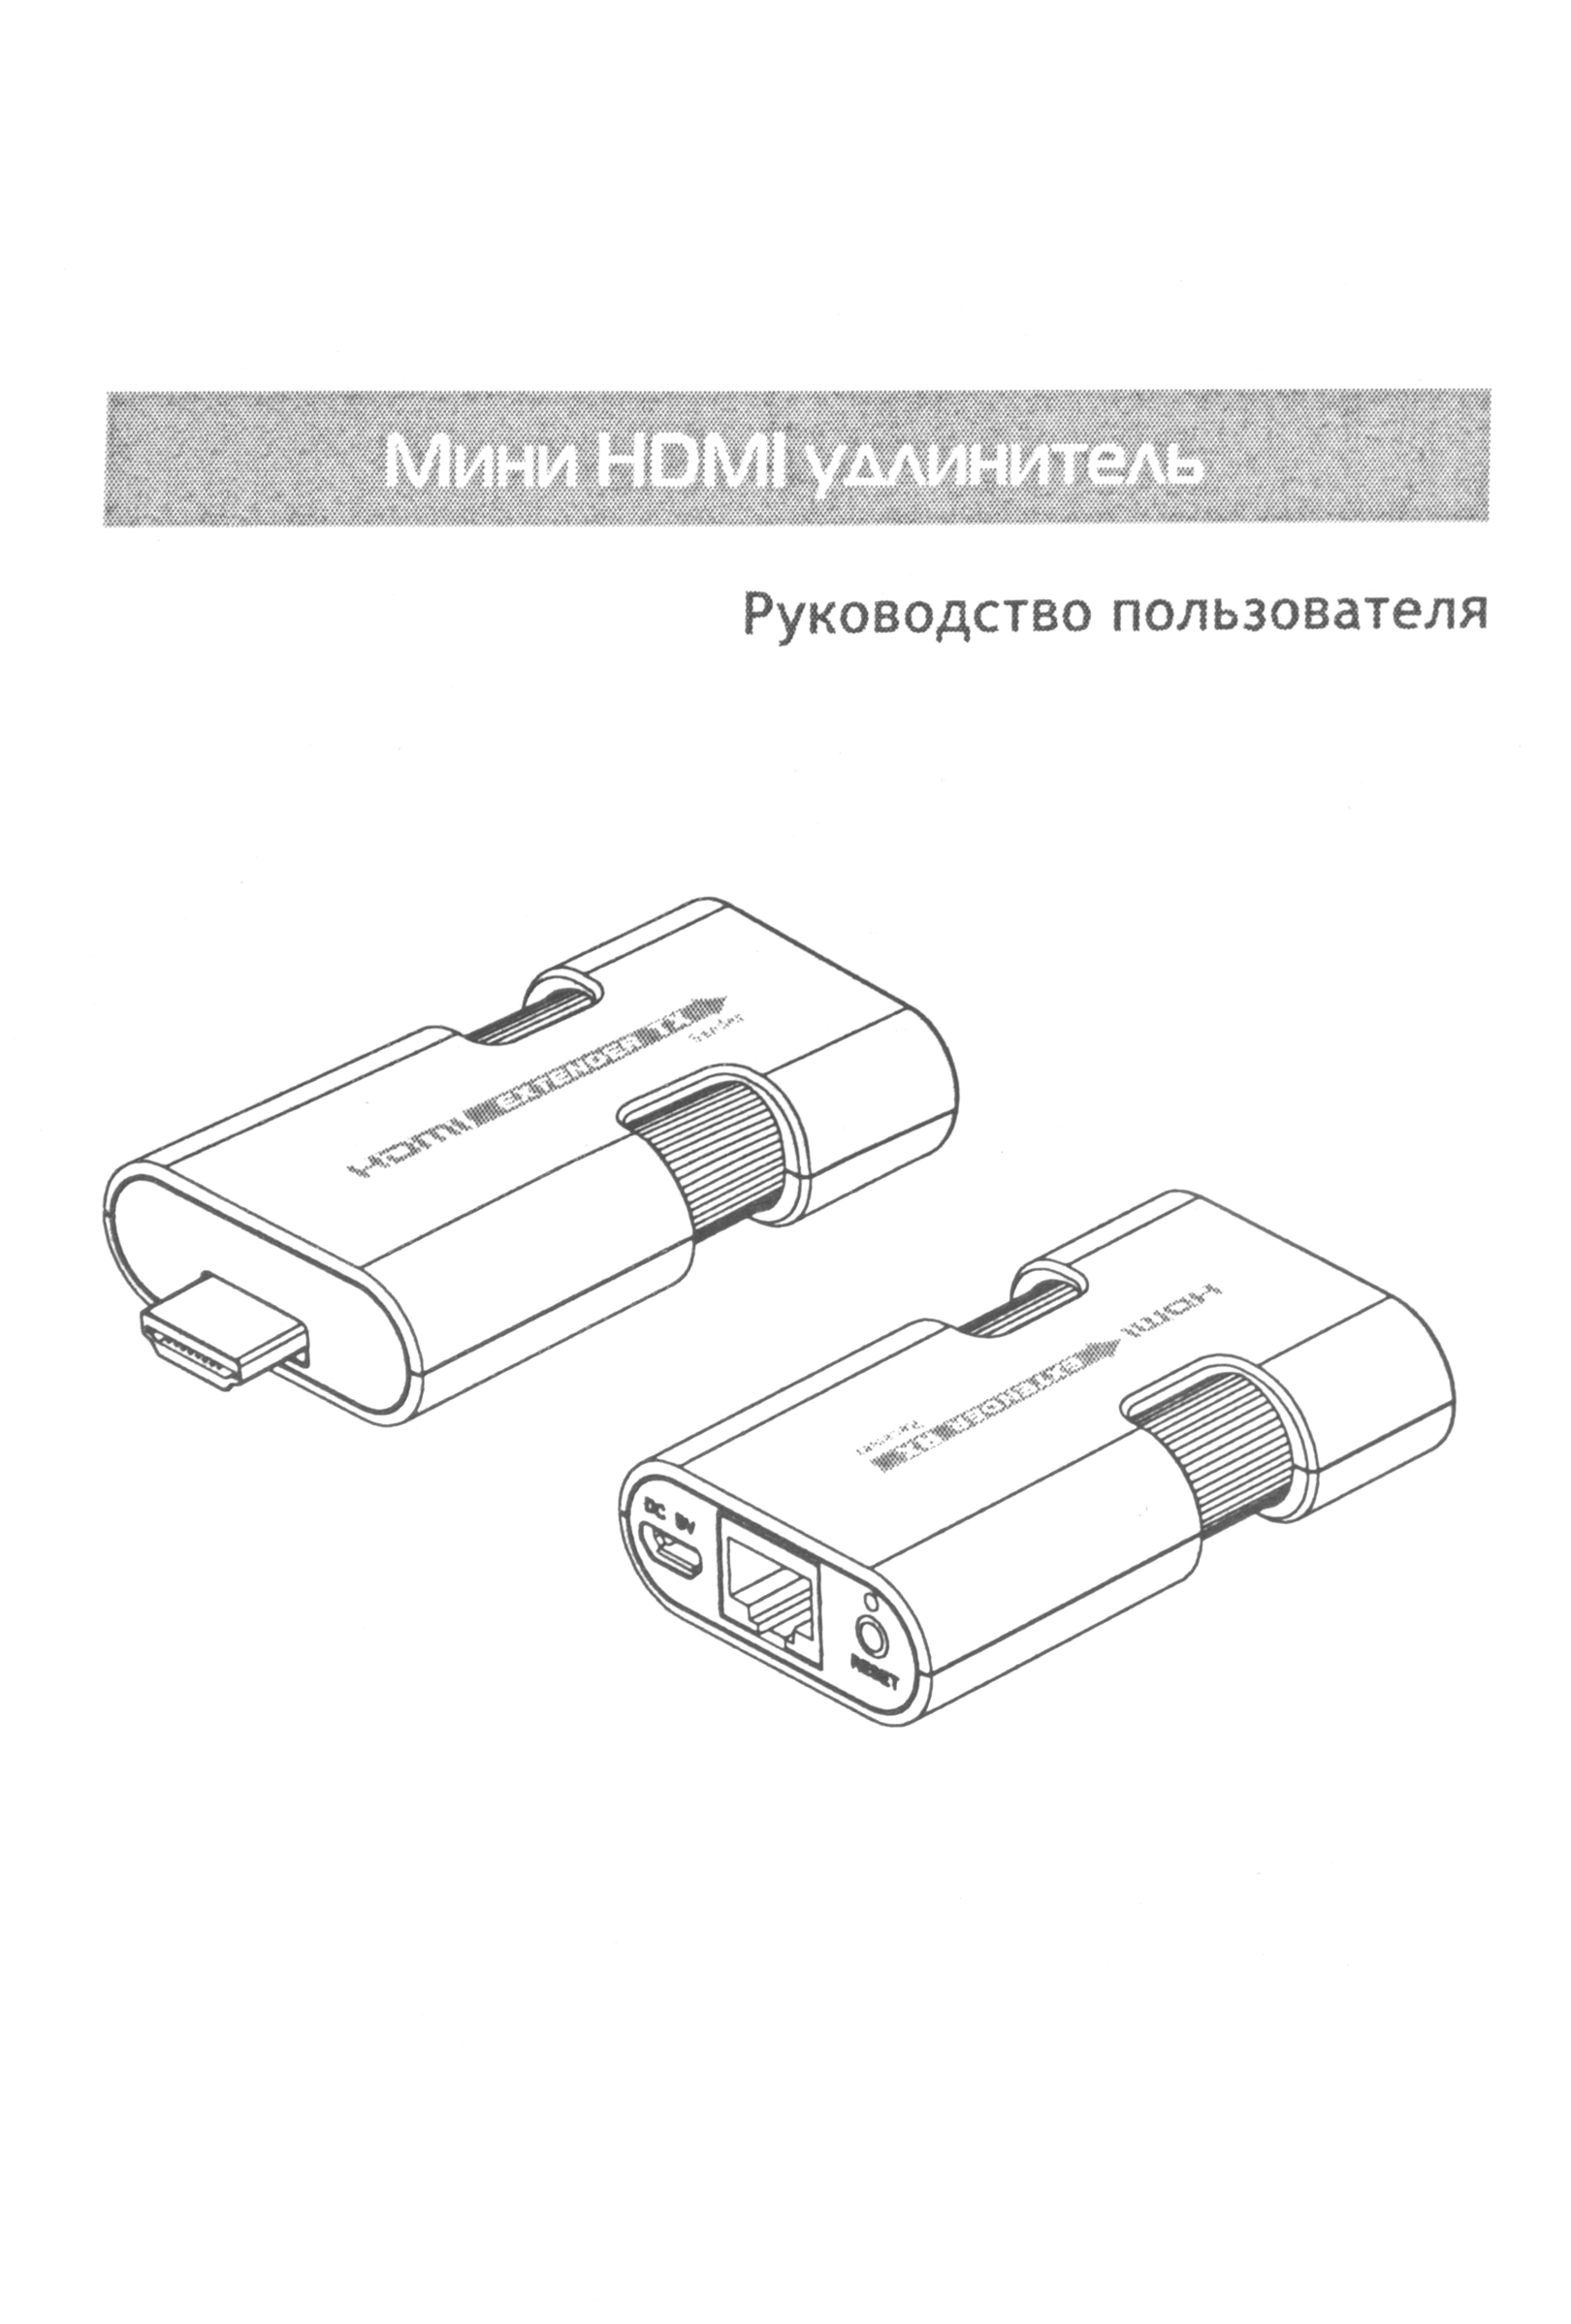 Удлинитель HDMI по витой паре Greenline GL-372Mini до 50 метров